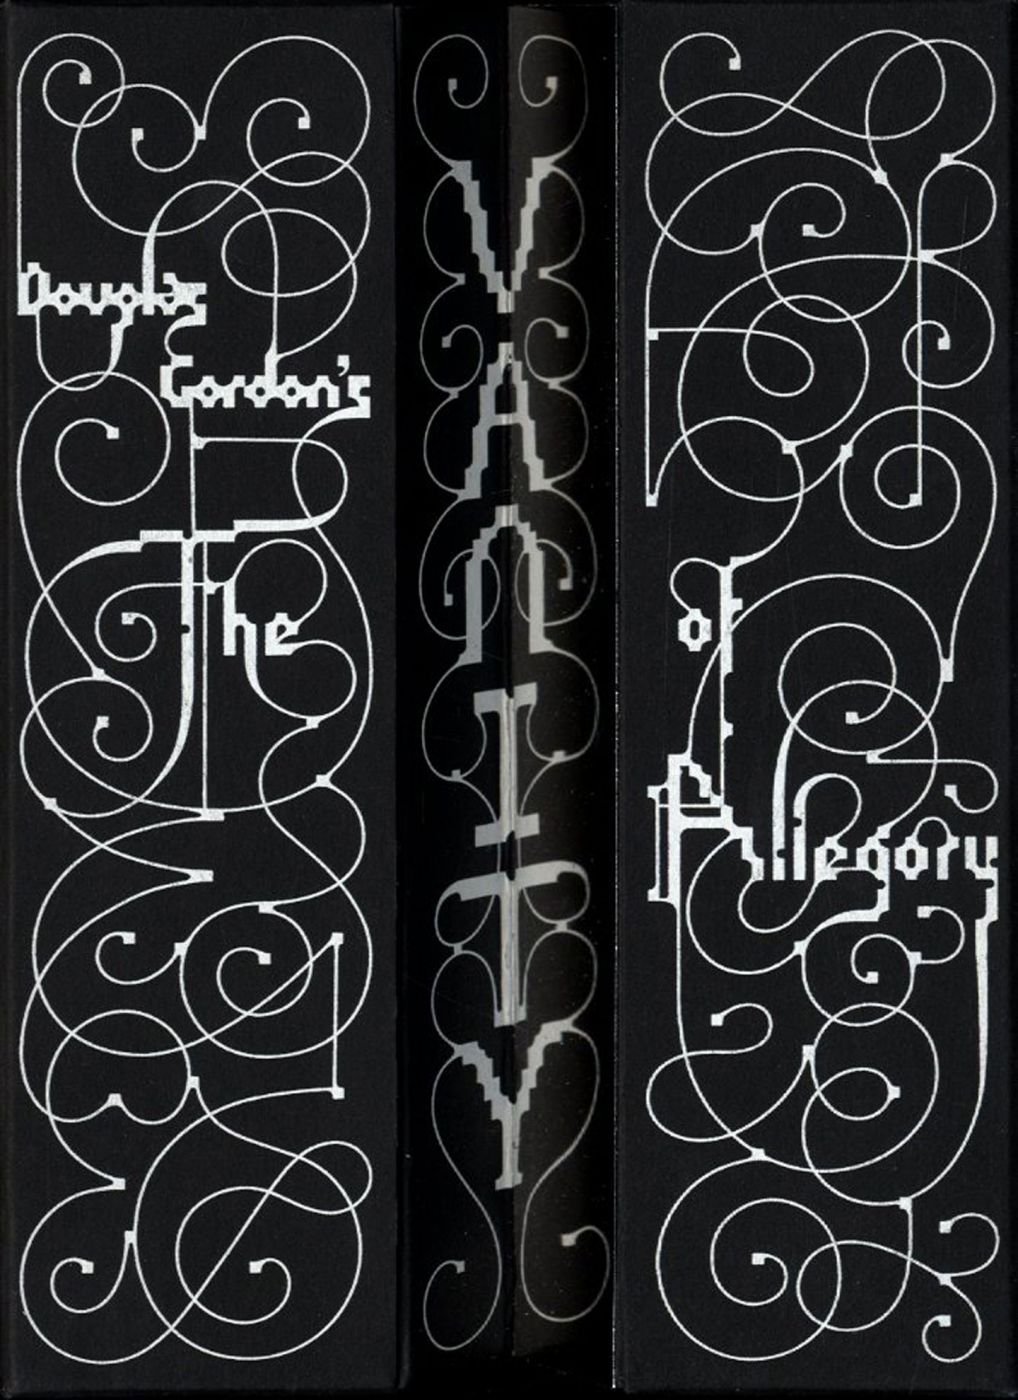 Douglas Gordon's The Vanity of Allegory